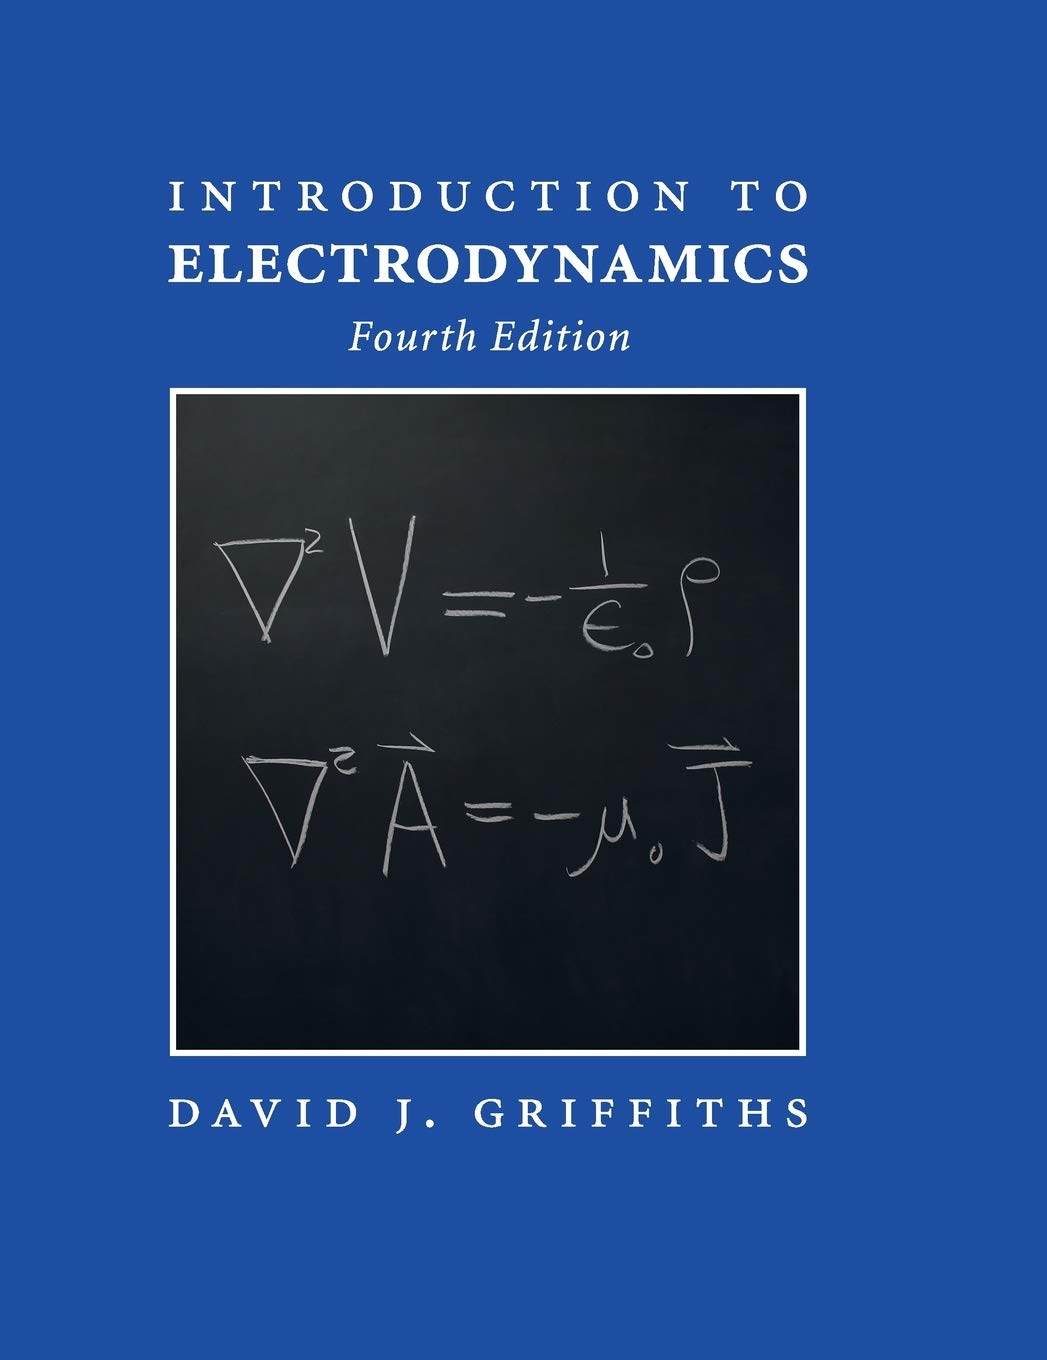 Image OfIntroduction To Electrodynamics